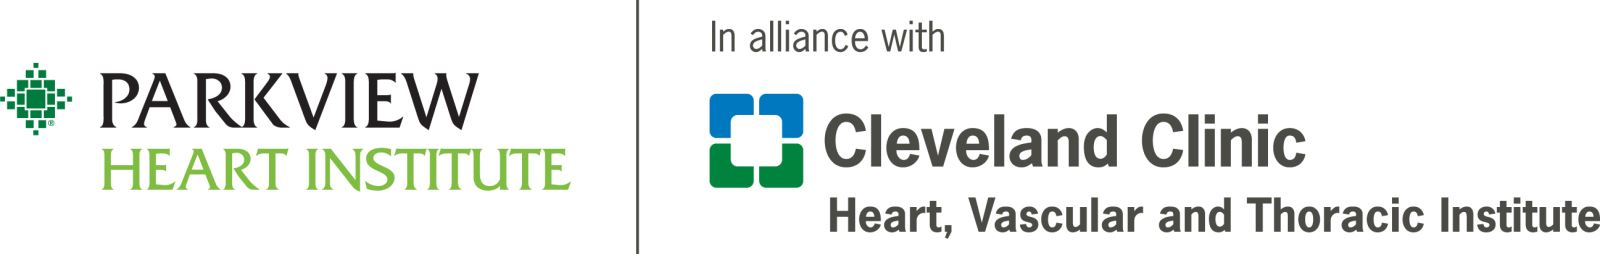 Parkview Heart Institute and Cleveland Clinic